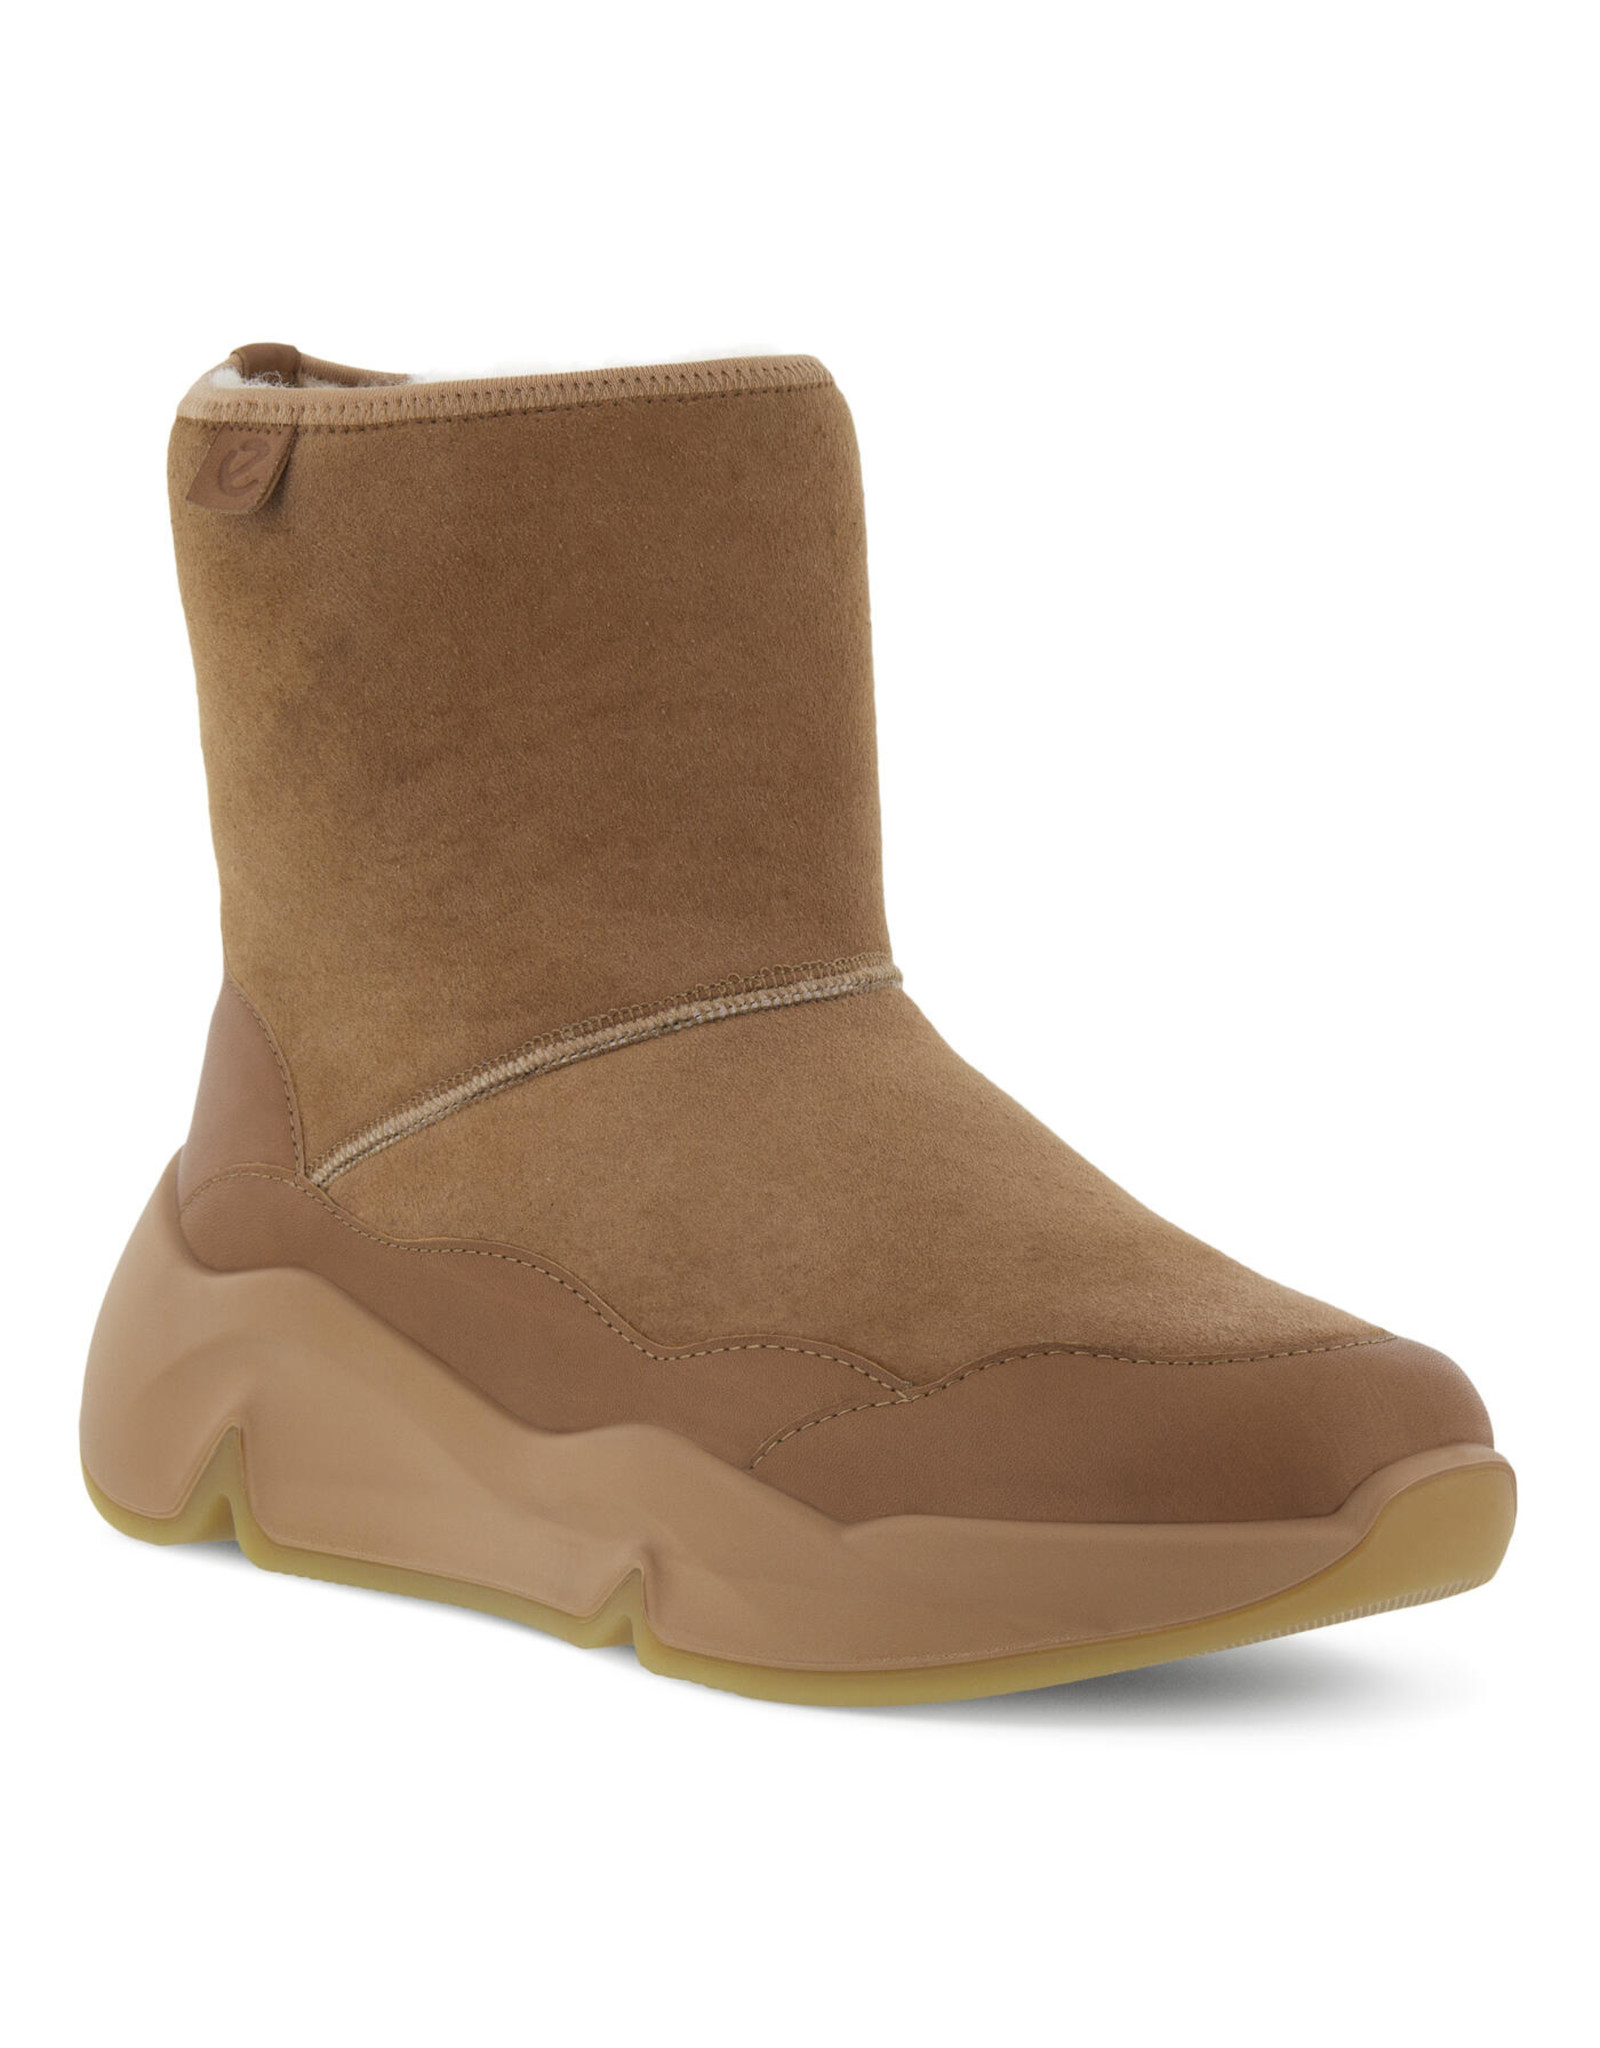 ECCO WOMEN'S CHUNKY SNEAKER HYGGE BOOT-TOFFEE/TOFFEE